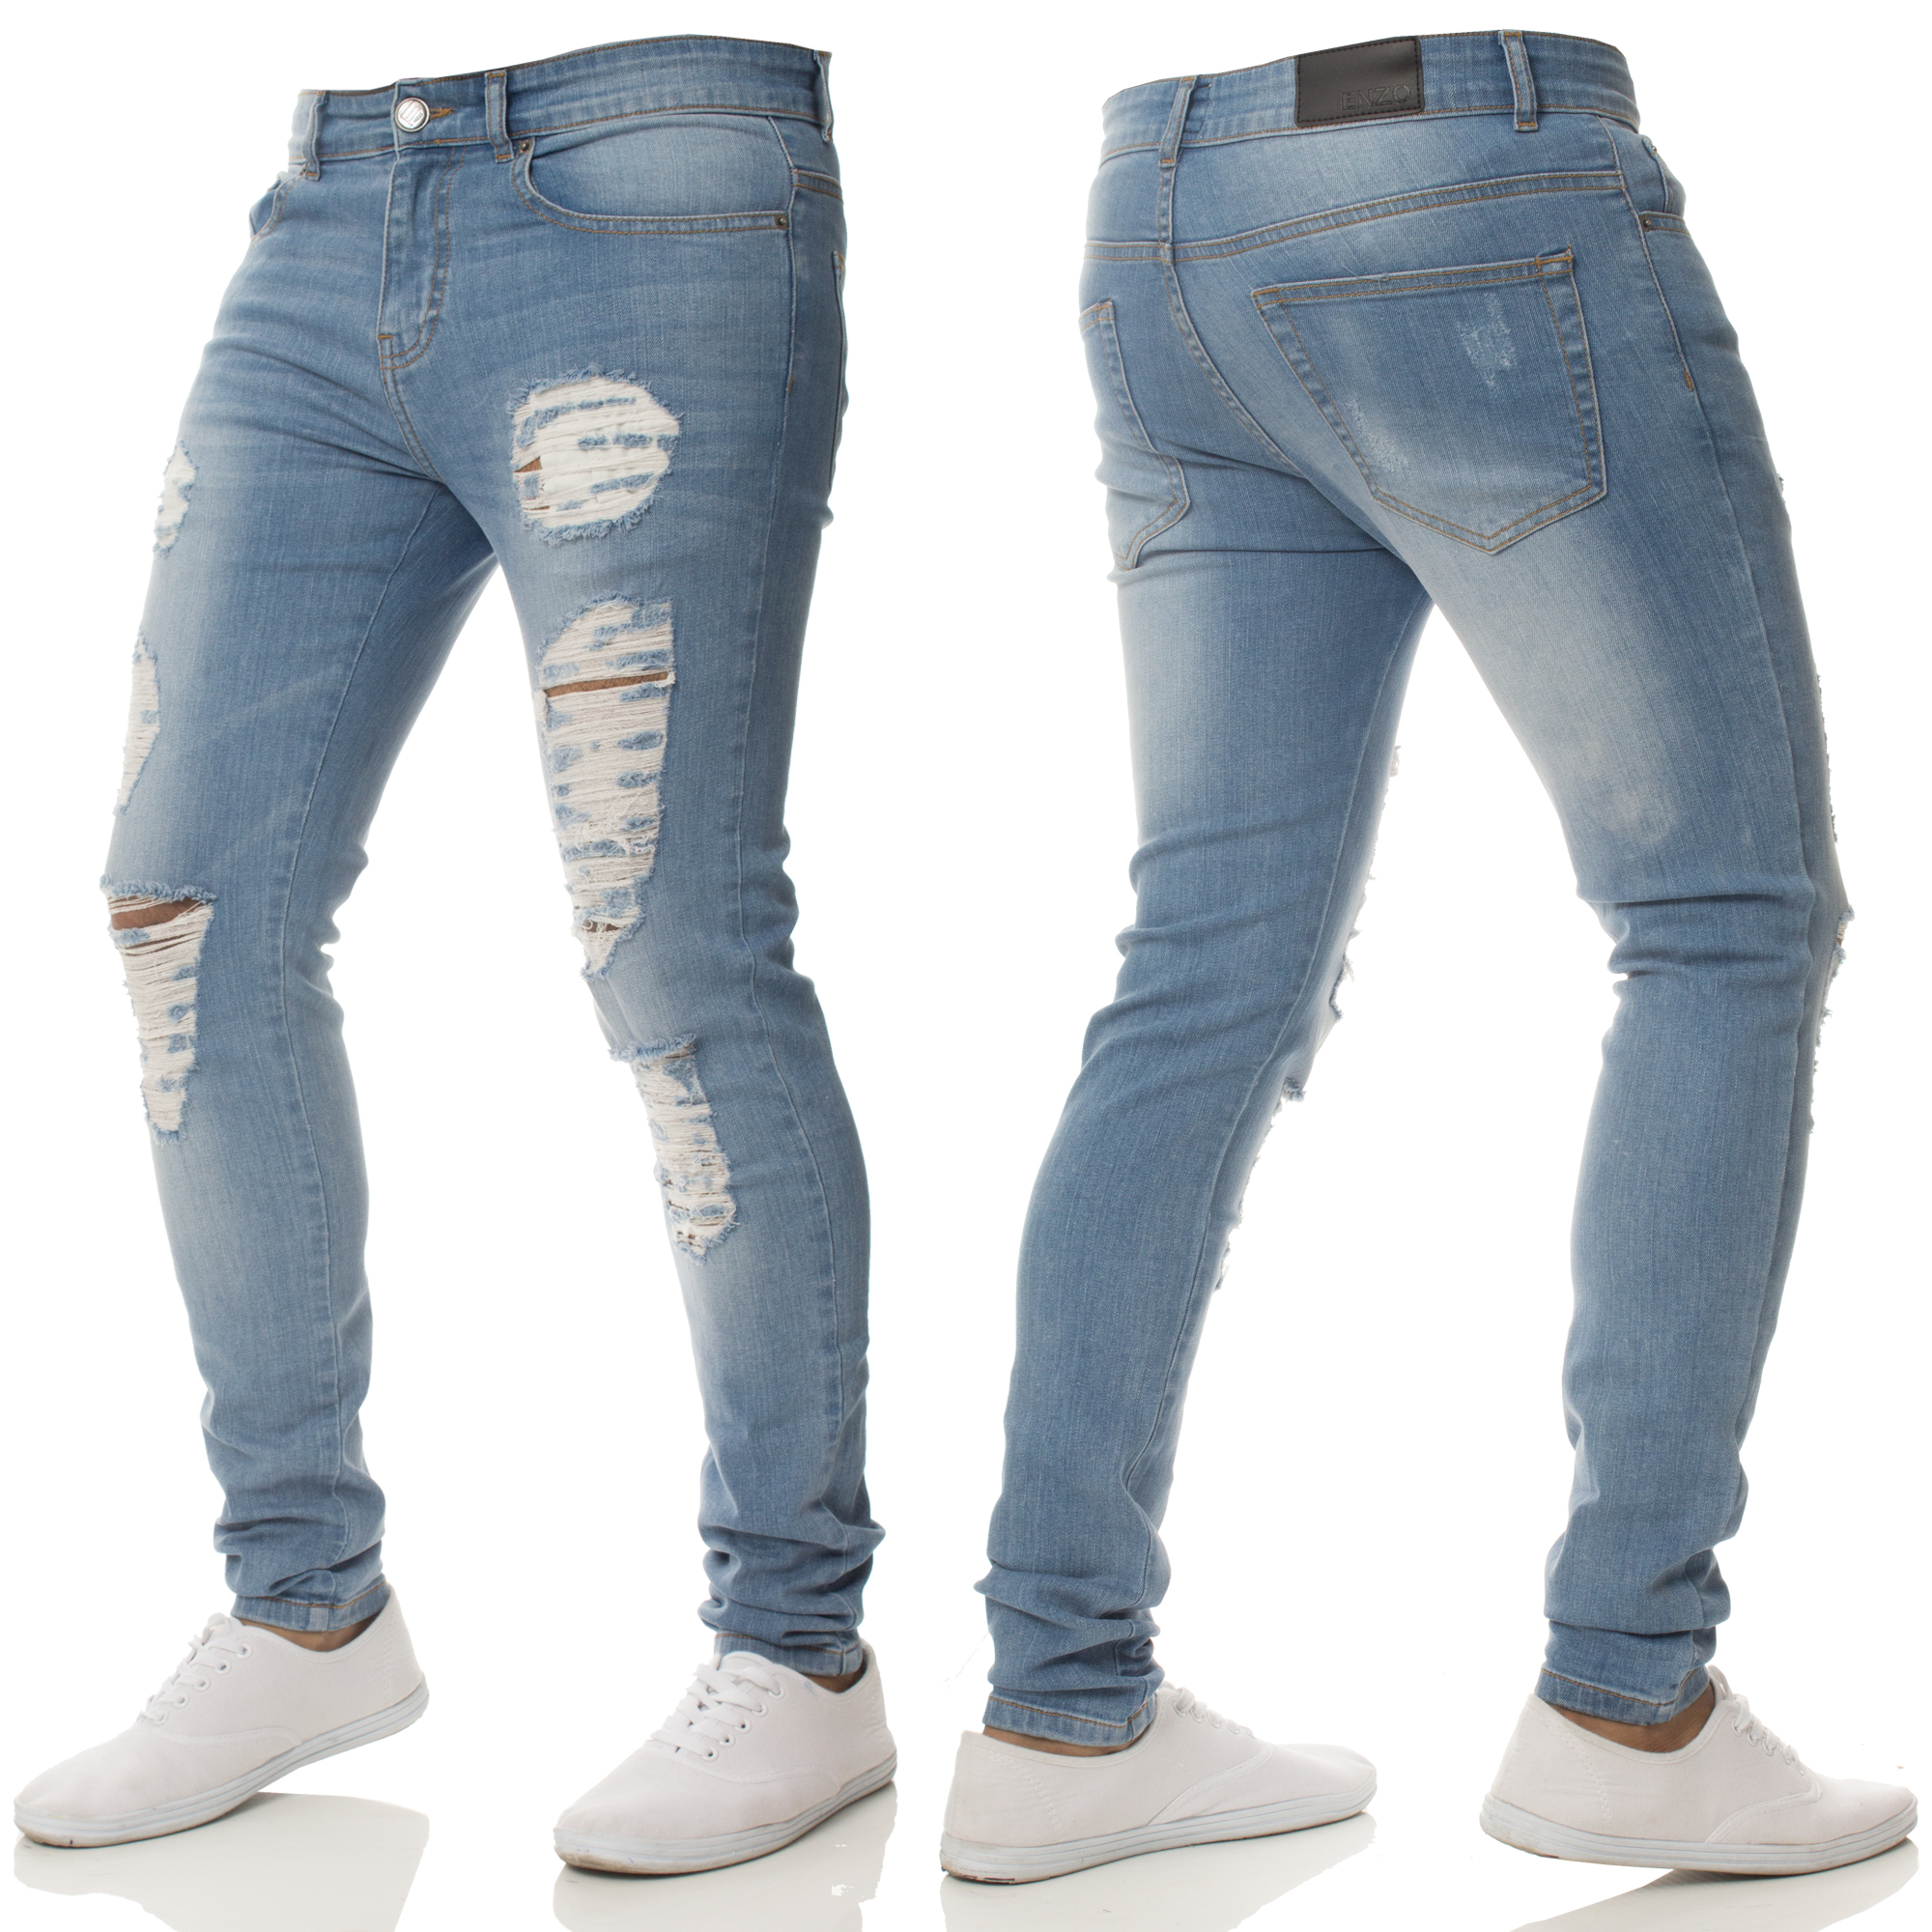 New ENZO Mens Super Skinny Stretch Jeans Knee Ripped Distressed ...